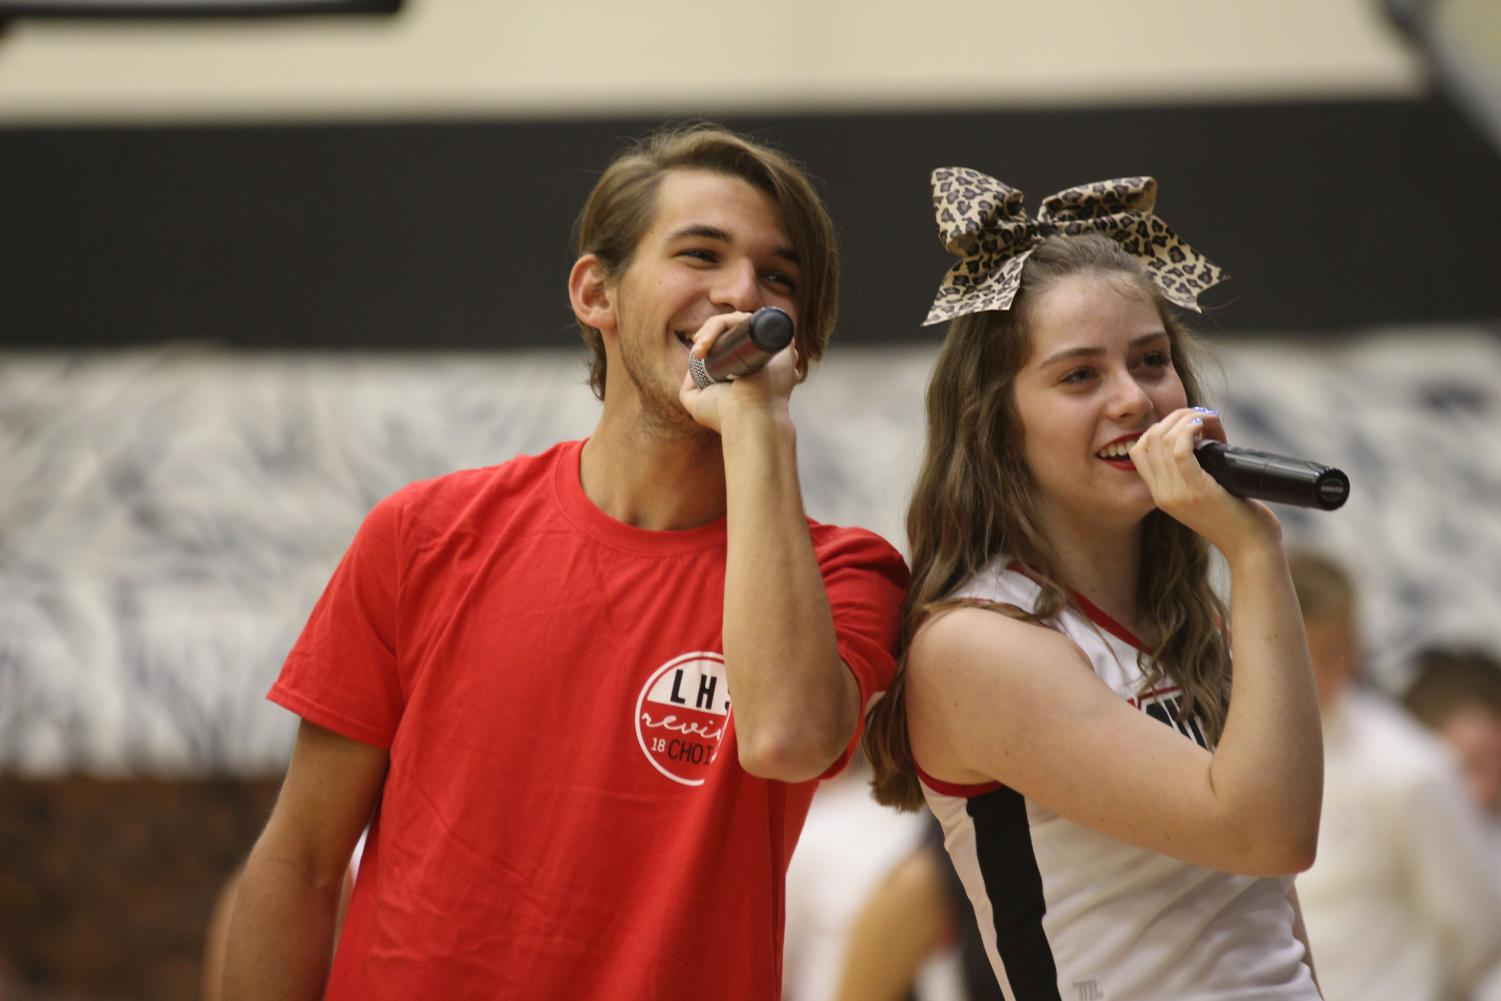 +Senior+Christian+Cortez+and+Junior+Caroline+Dobbs+sing+the+Lovejoy+Alma+Mater+at+the+end+of+the+pep+rally+along+with+the+a+capella.+They+performed+a+remix+version+of+the+traditional+school+anthem.